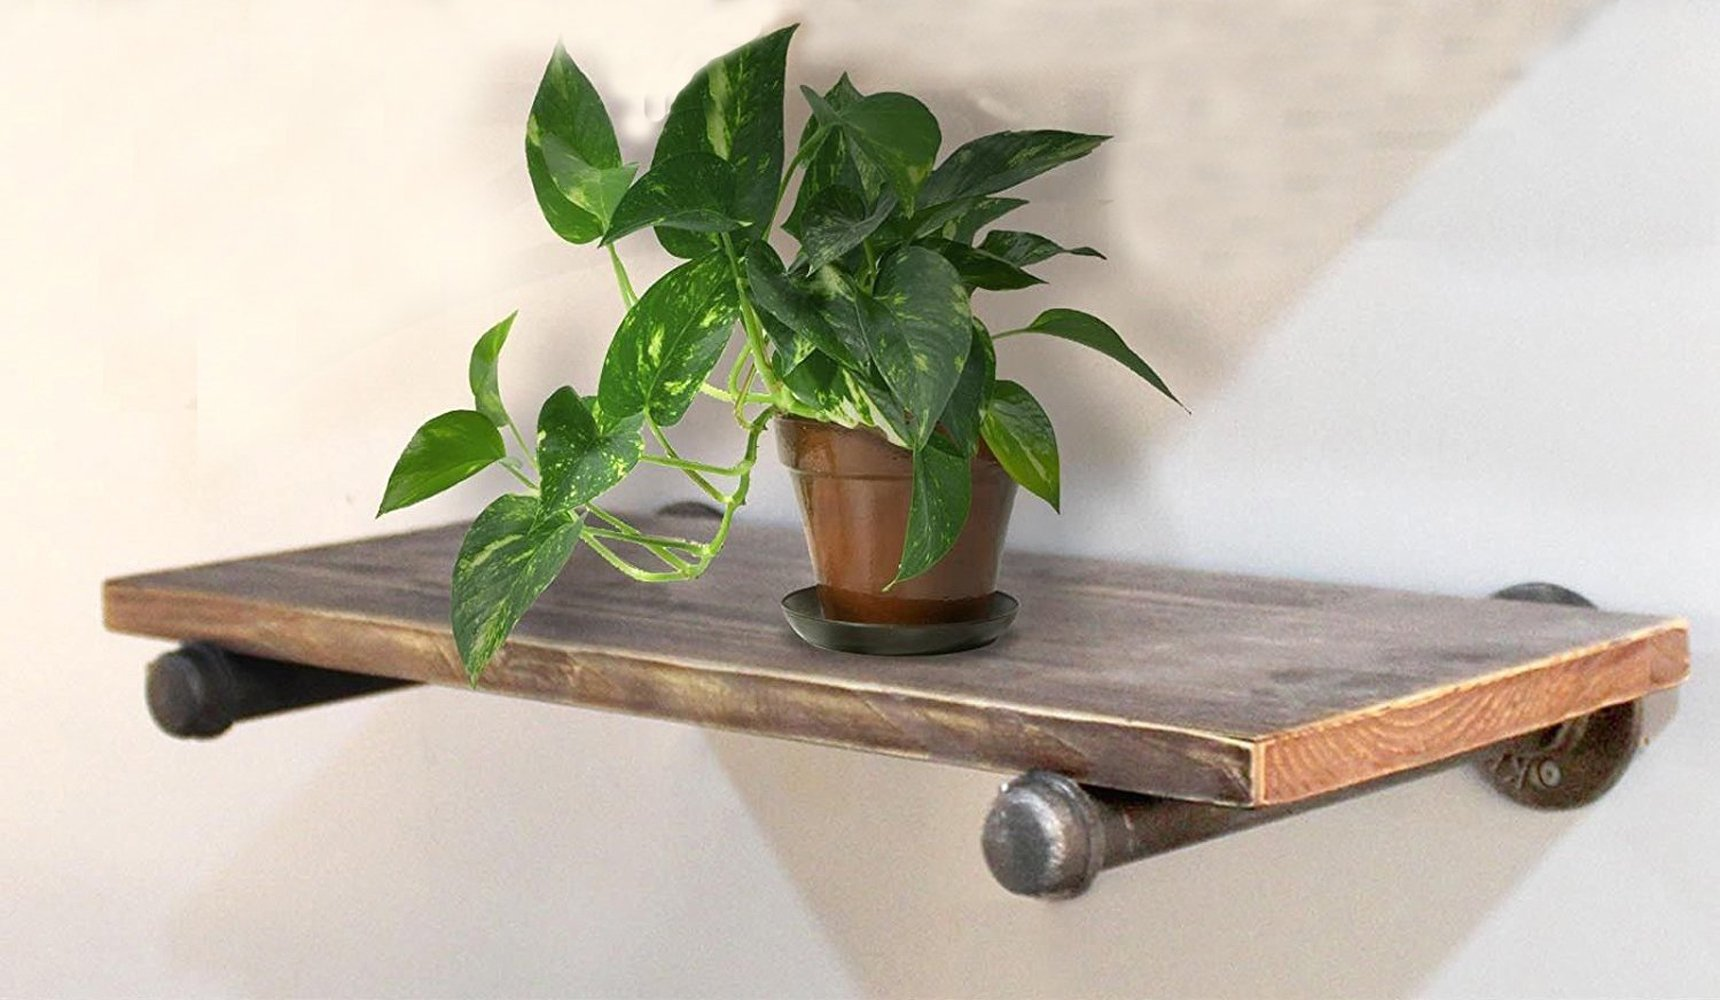 """Diwhy 20"""" Industrial Pipe Shelves,Wall Mounted Metal Pipe Wood Shelf, Rustic Wall Shelf with Towel Bar,Towel Racks for Bathroom,Rustic Pipe Ladder Bookshelf Bookcase,DIY Open Pipe Shelving(1 Tier) - 【Industrial Decor】:Rustic industrial pipe shelf in silver brushed gray finish.Iron pipes and reclaimed real wood composition in vintage style.Storage and decorations.It can also be used outdoors.Sturdy and decorative.Ertremely durable and long lasting. 【Size】:Made from quality metal pipe and pine wood.Board size: length 19.68in x depth 8.66in x thickness 1.18in.Water pipe diameter: 1.26in. 【Multi-functional】:The floating shelves are versatile, such as bathroom accessories, towel holder, bookcase, spice racks. - wall-shelves, living-room-furniture, living-room - 71%2BjcnoEh L -"""